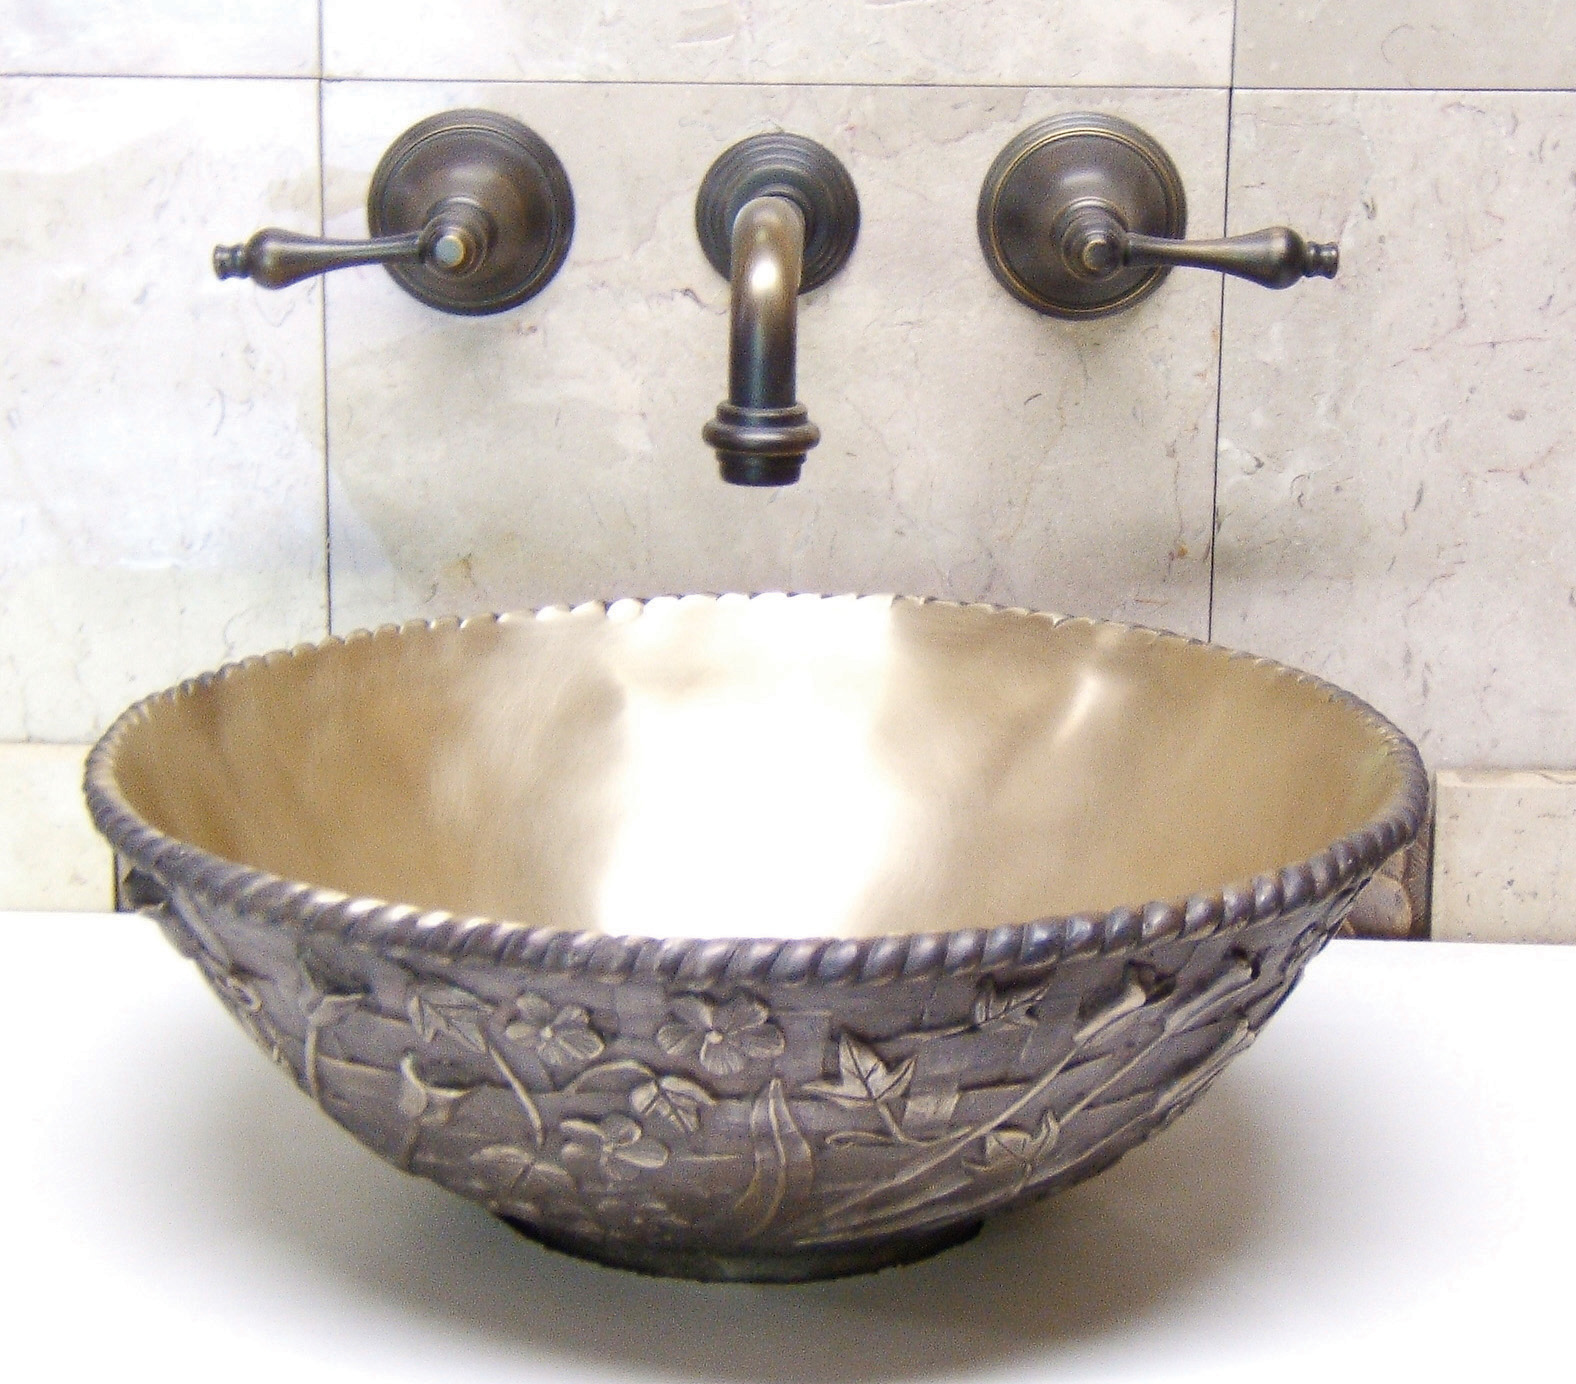 connie deamond interior creations: unusual sinks for the